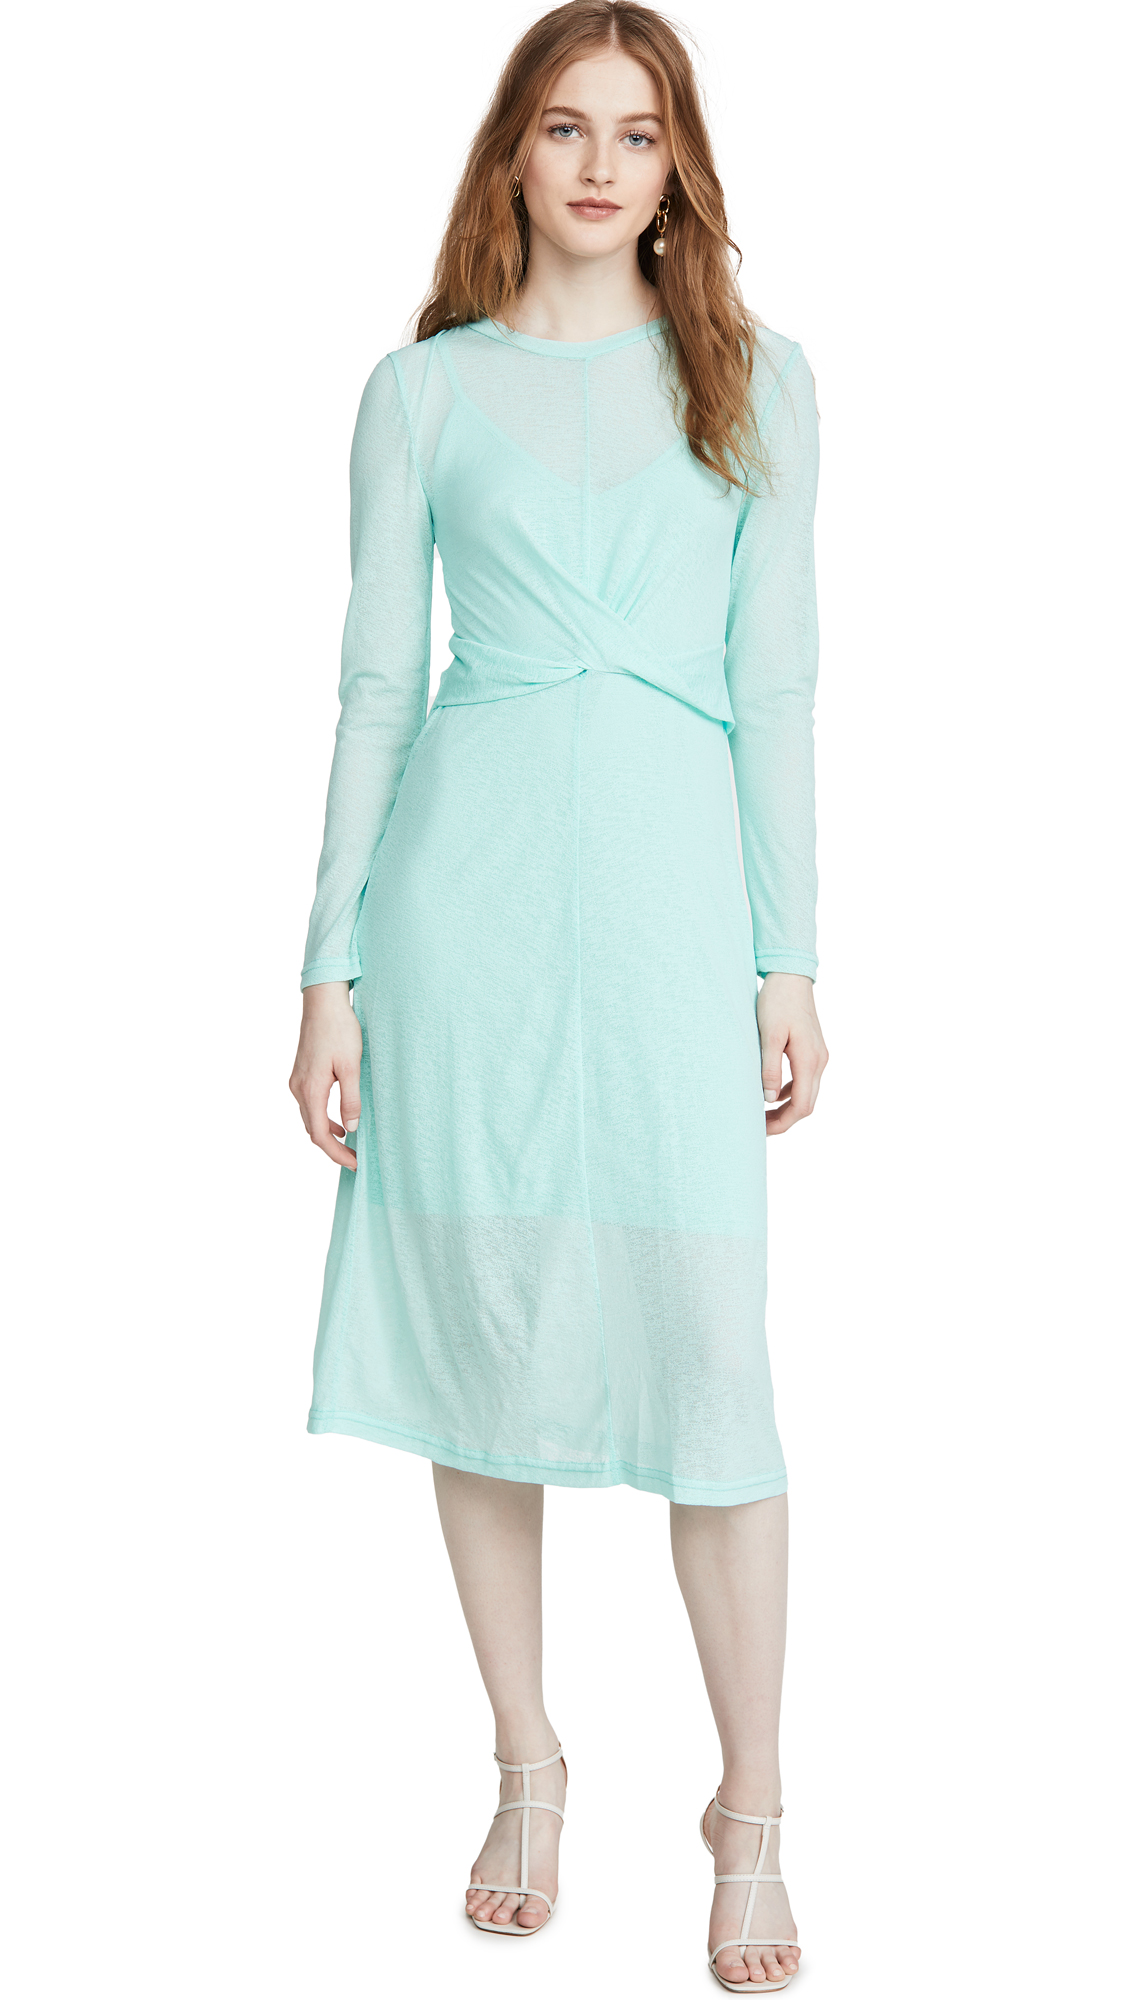 The Fifth Label Own Light Long Sleeve Midi Dress - 40% Off Sale